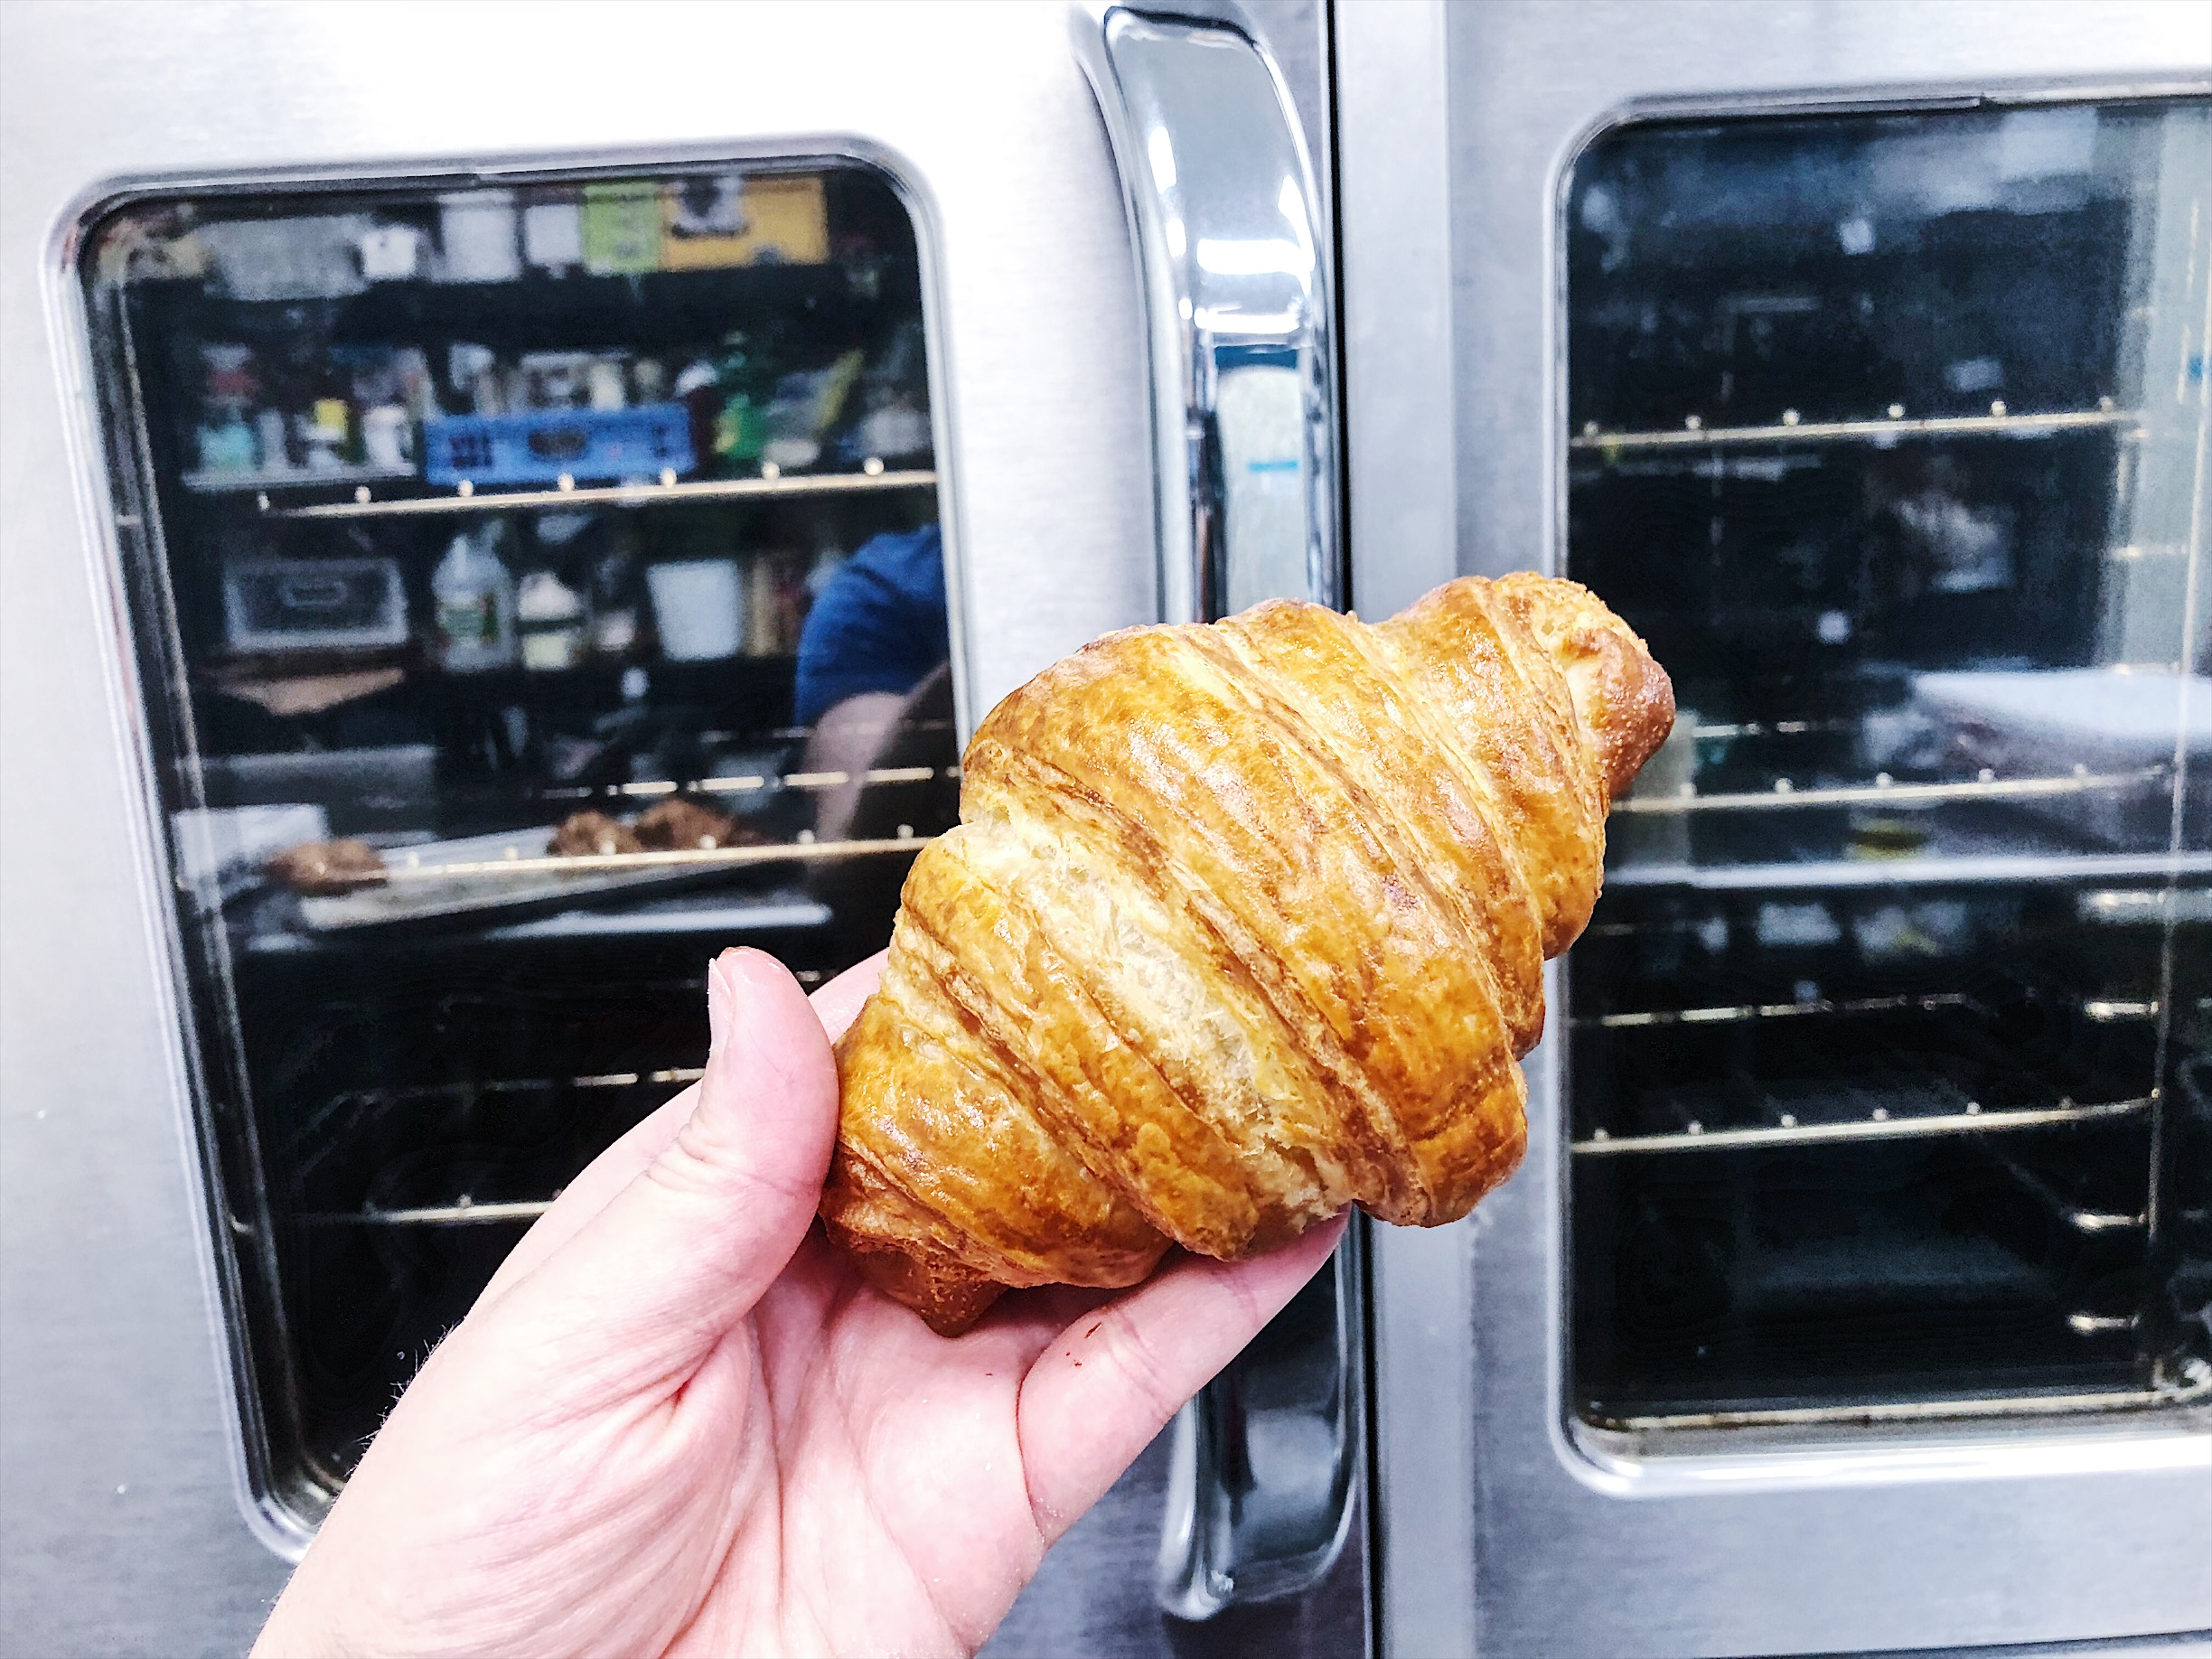 Classic croissant straight out of the oven.